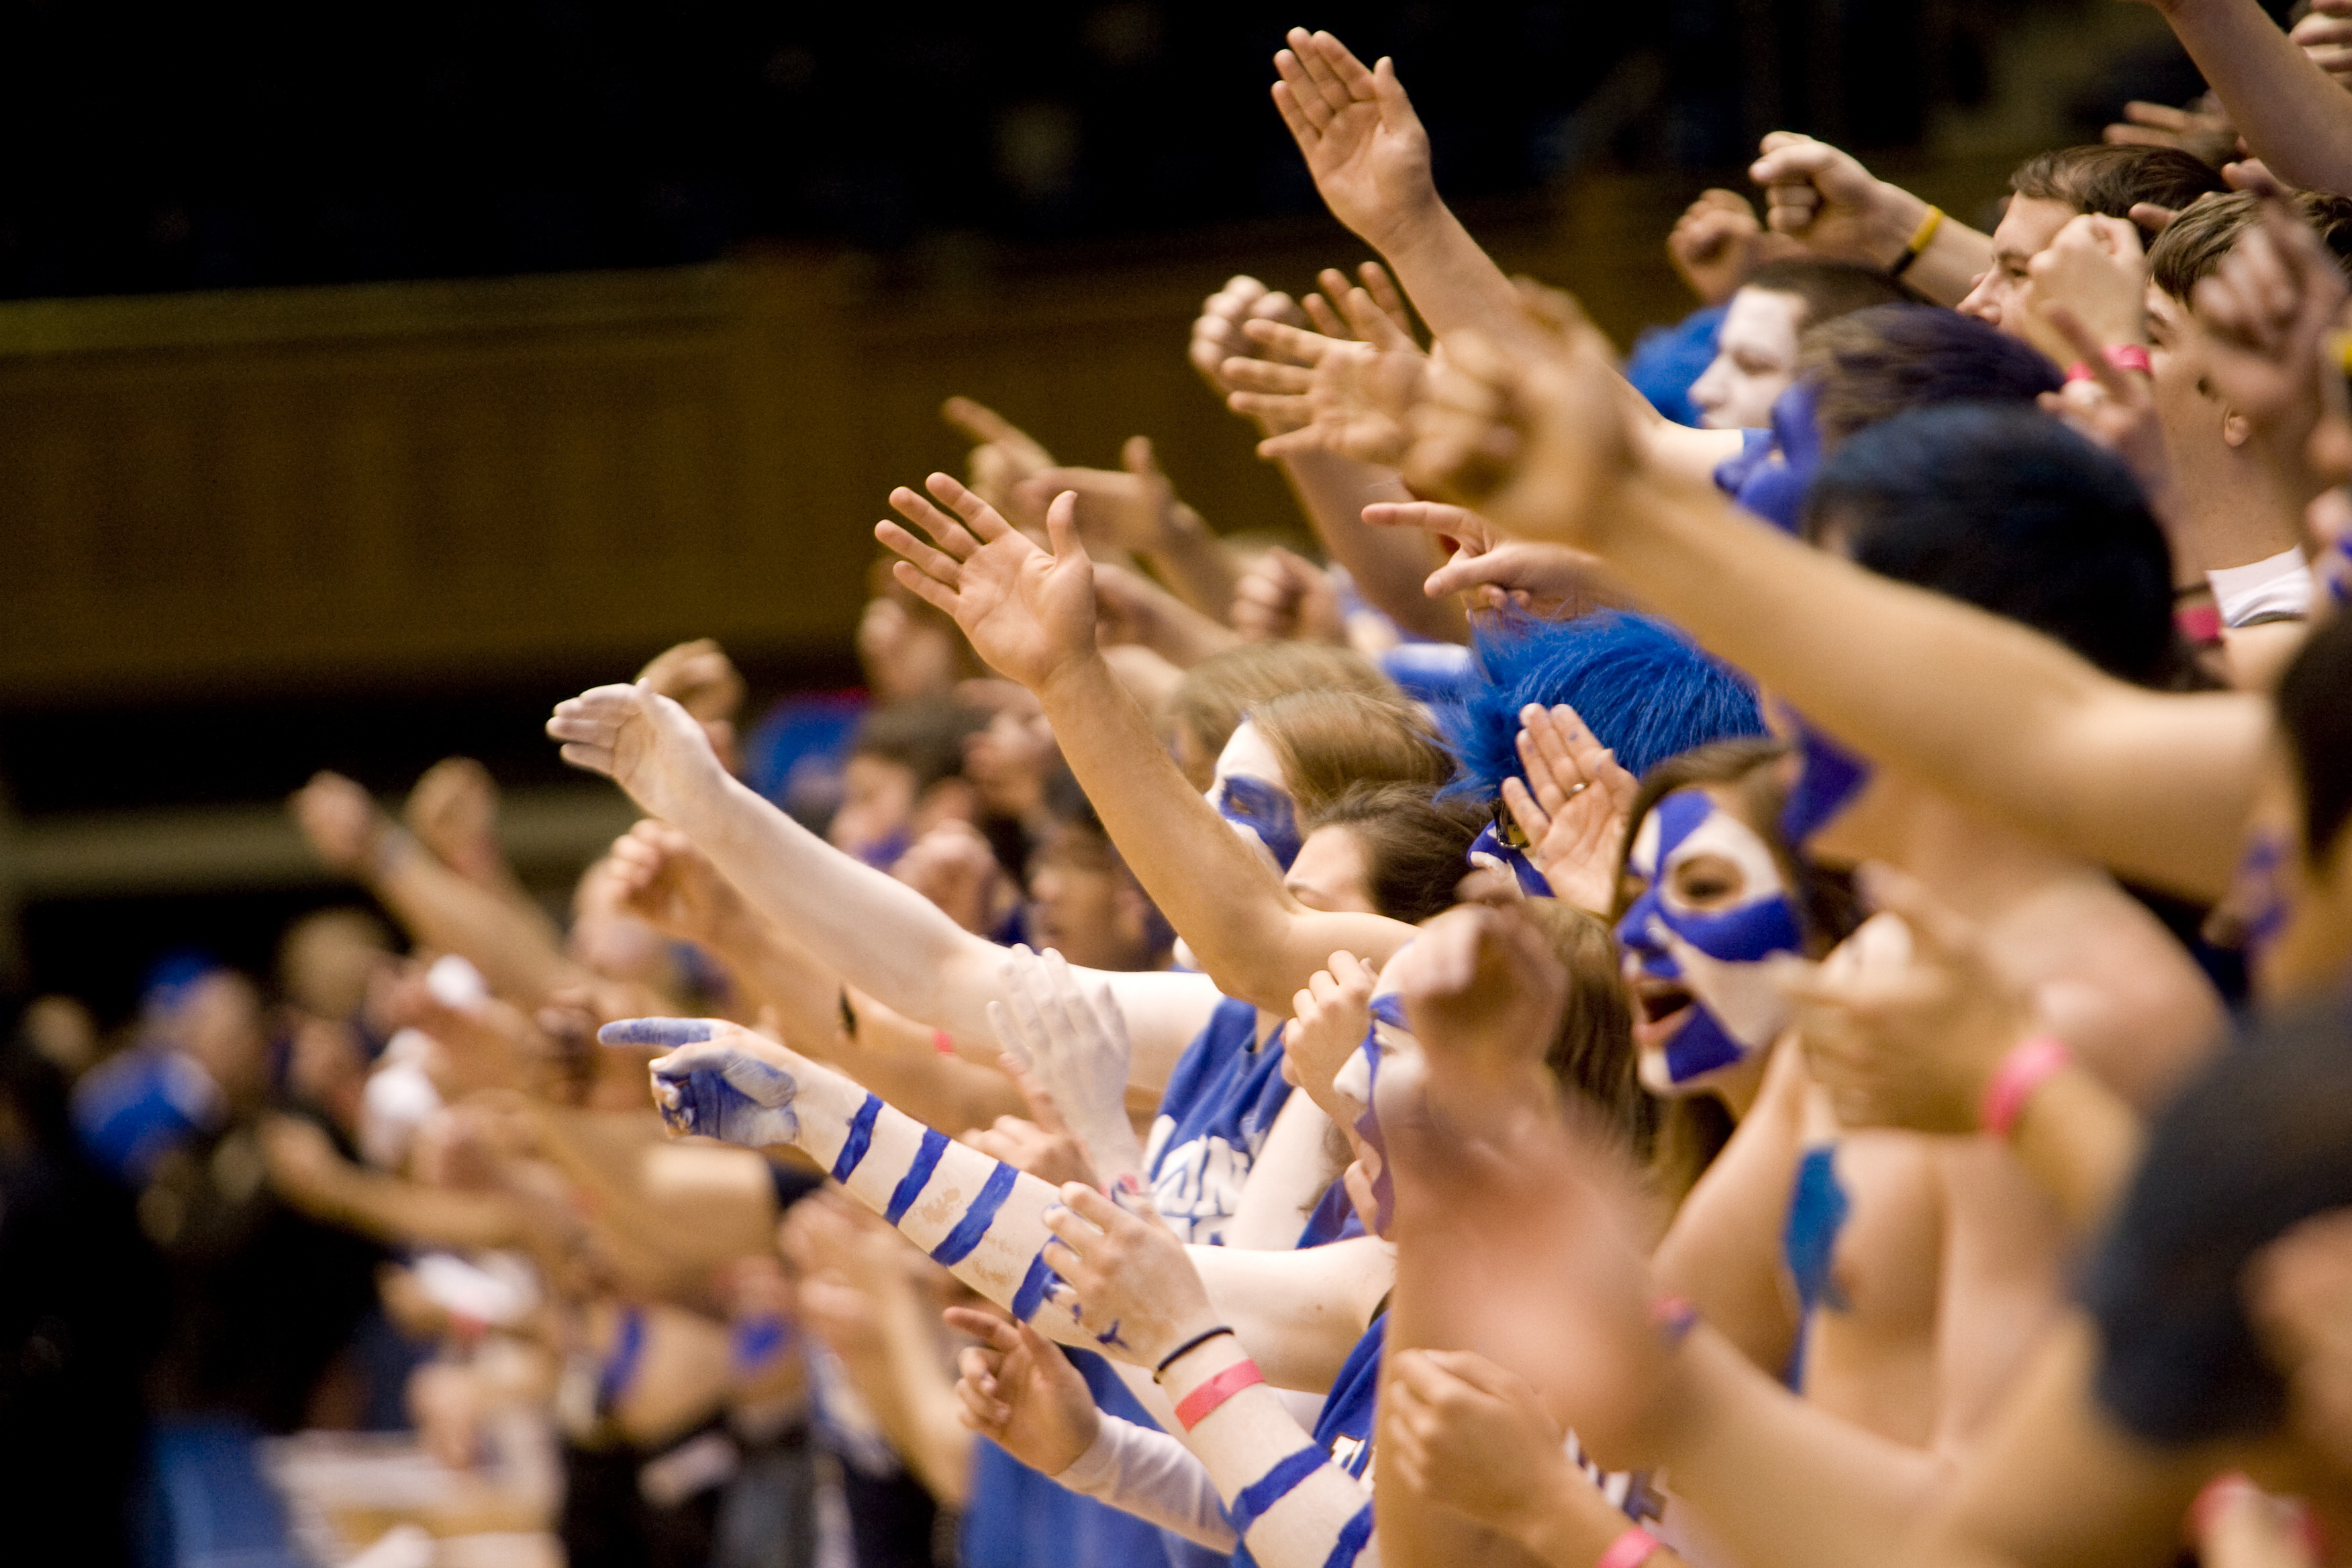 crowd of students in the stands, dressed in duke blue cheering and waving